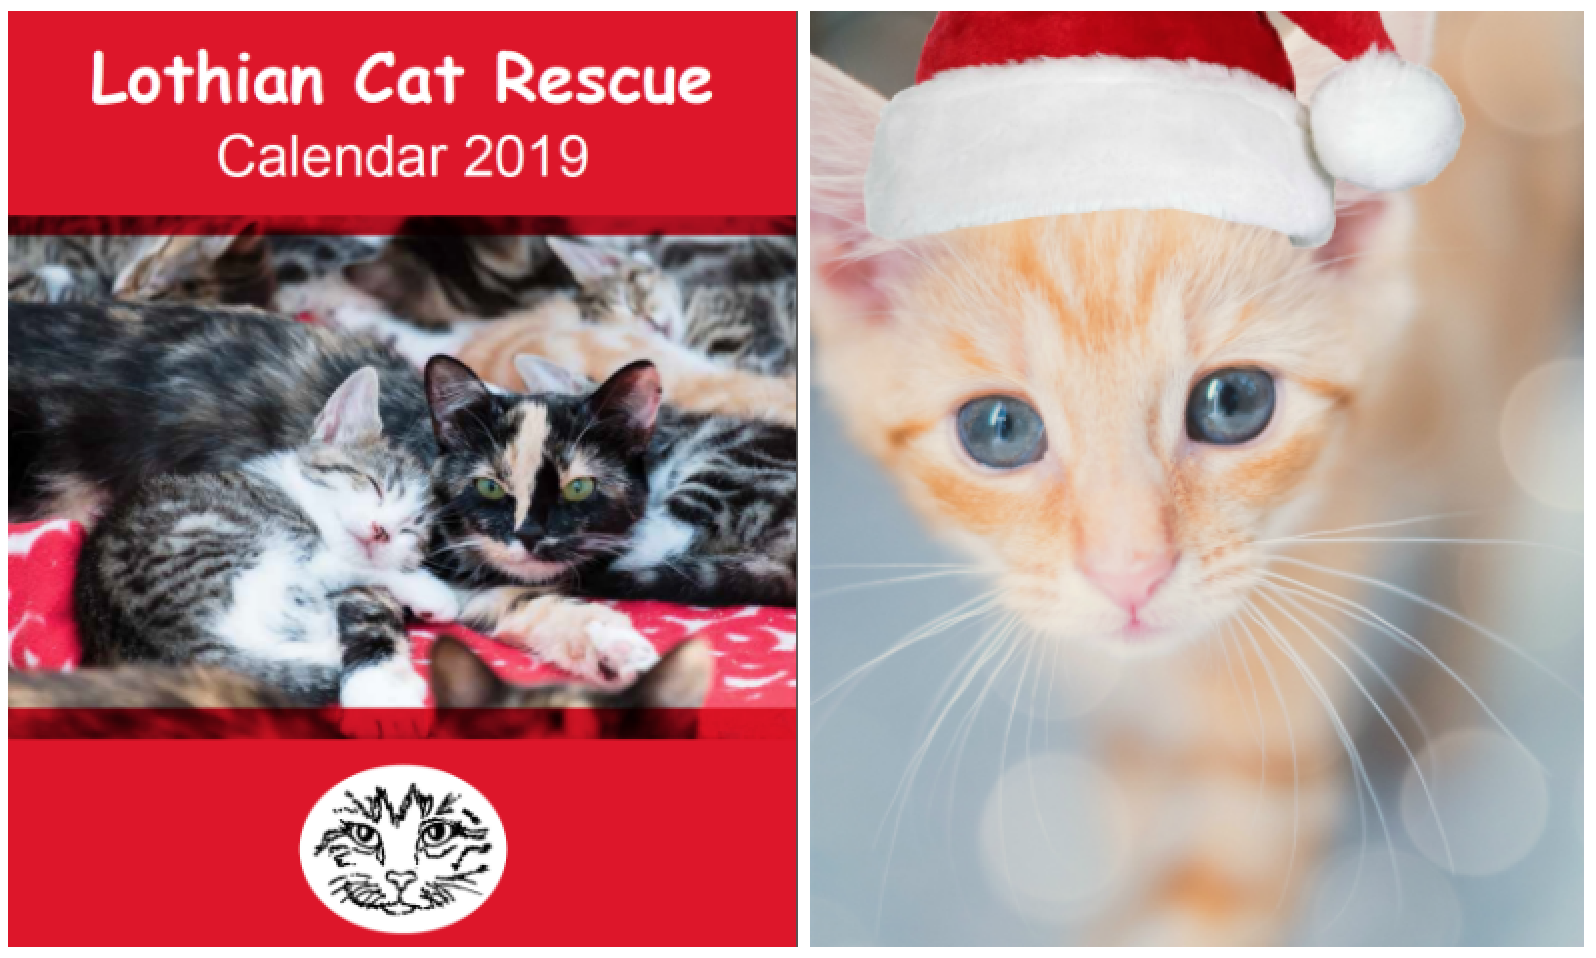 2019 Calendar and Christmas cards now on sale